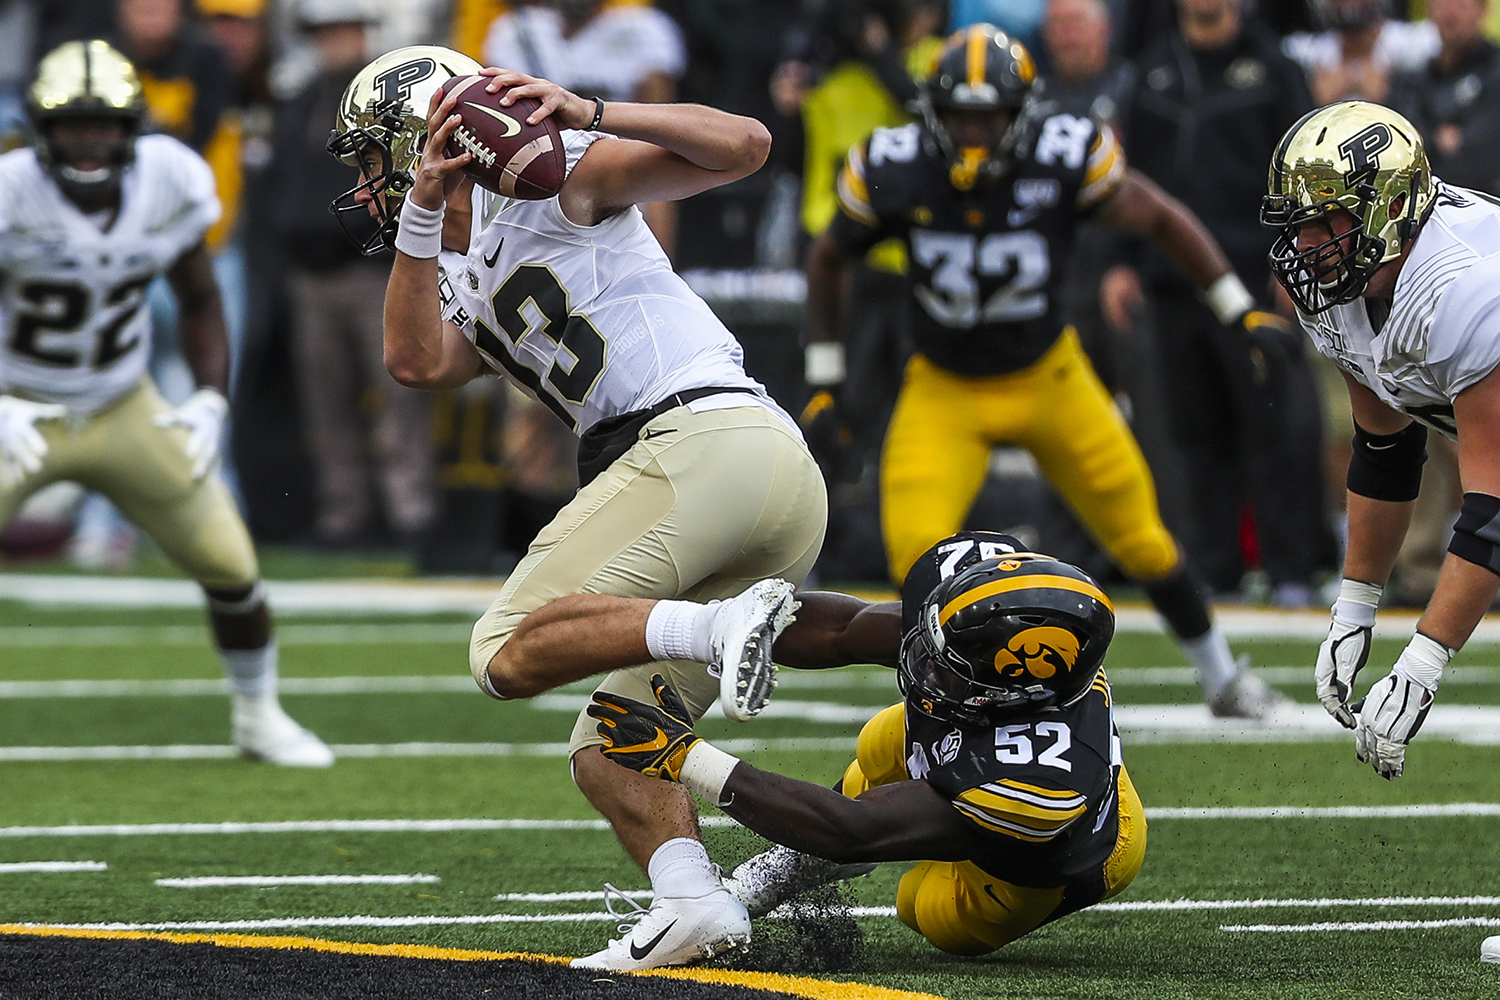 Iowa linebacker Amani Jones attempts to tackle Purdue quarterback Jack Plummer during the Iowa football game against Purdue at Kinnick Stadium on Saturday, Oct. 19, 2019. The Hawkeyes defeated the Boilermakers 26-20.